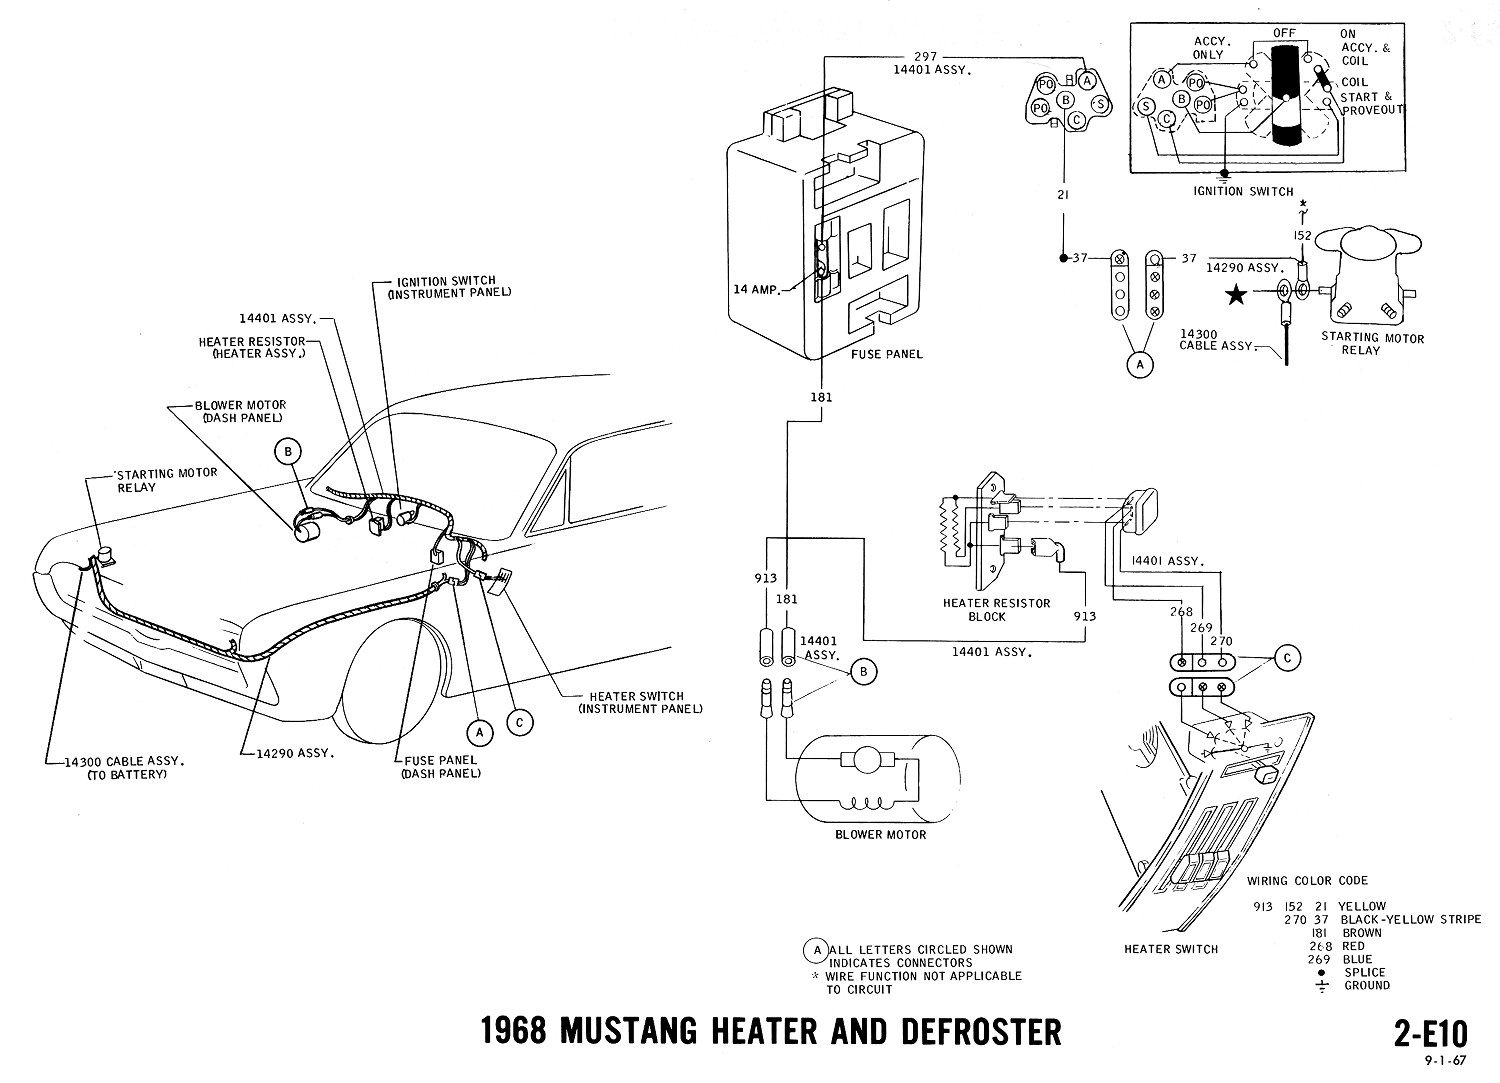 1968 mustang convertible top switch wiring diagram 1968